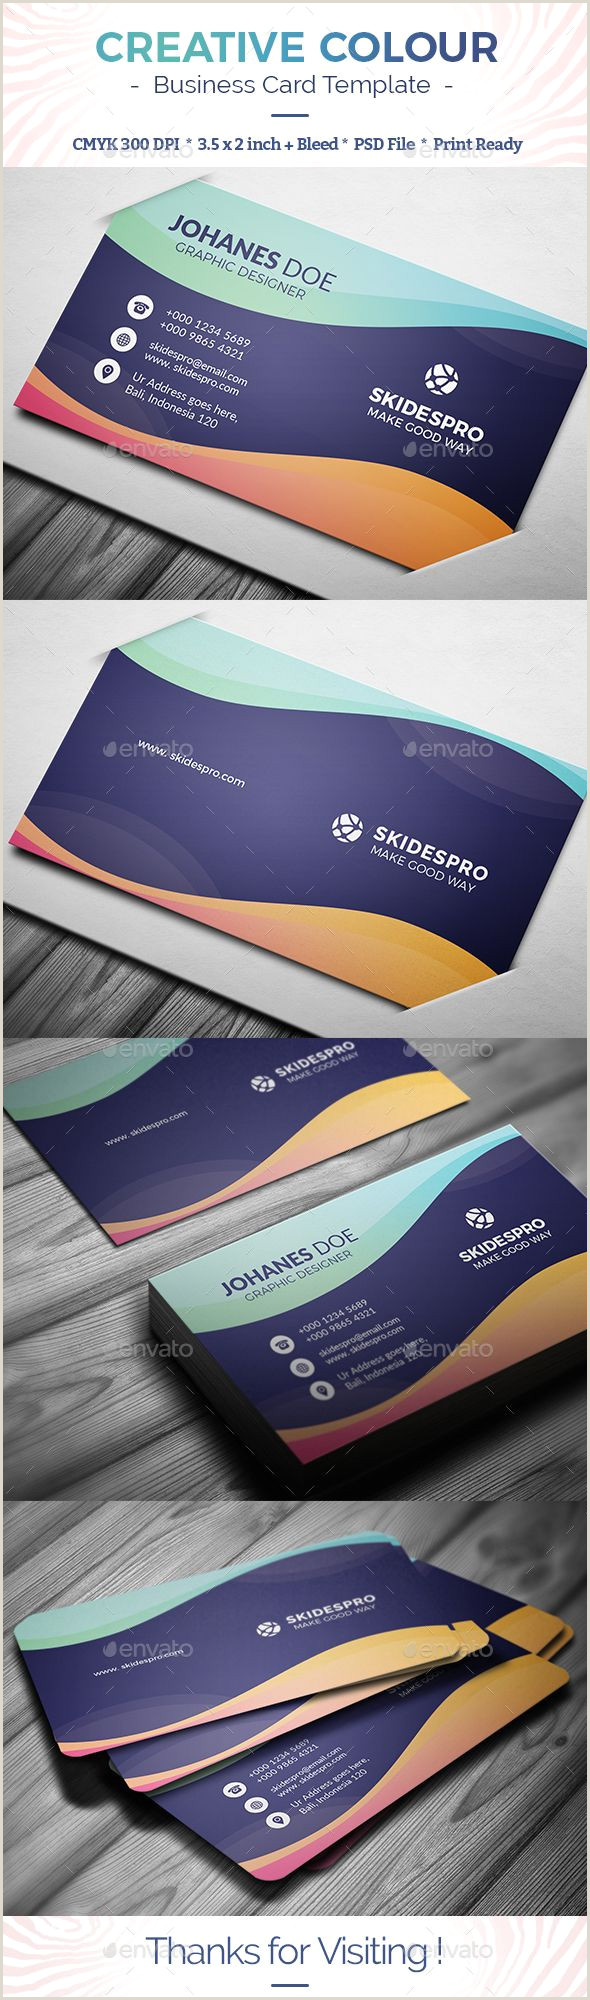 Cool Business Cards Printing Creative Colour